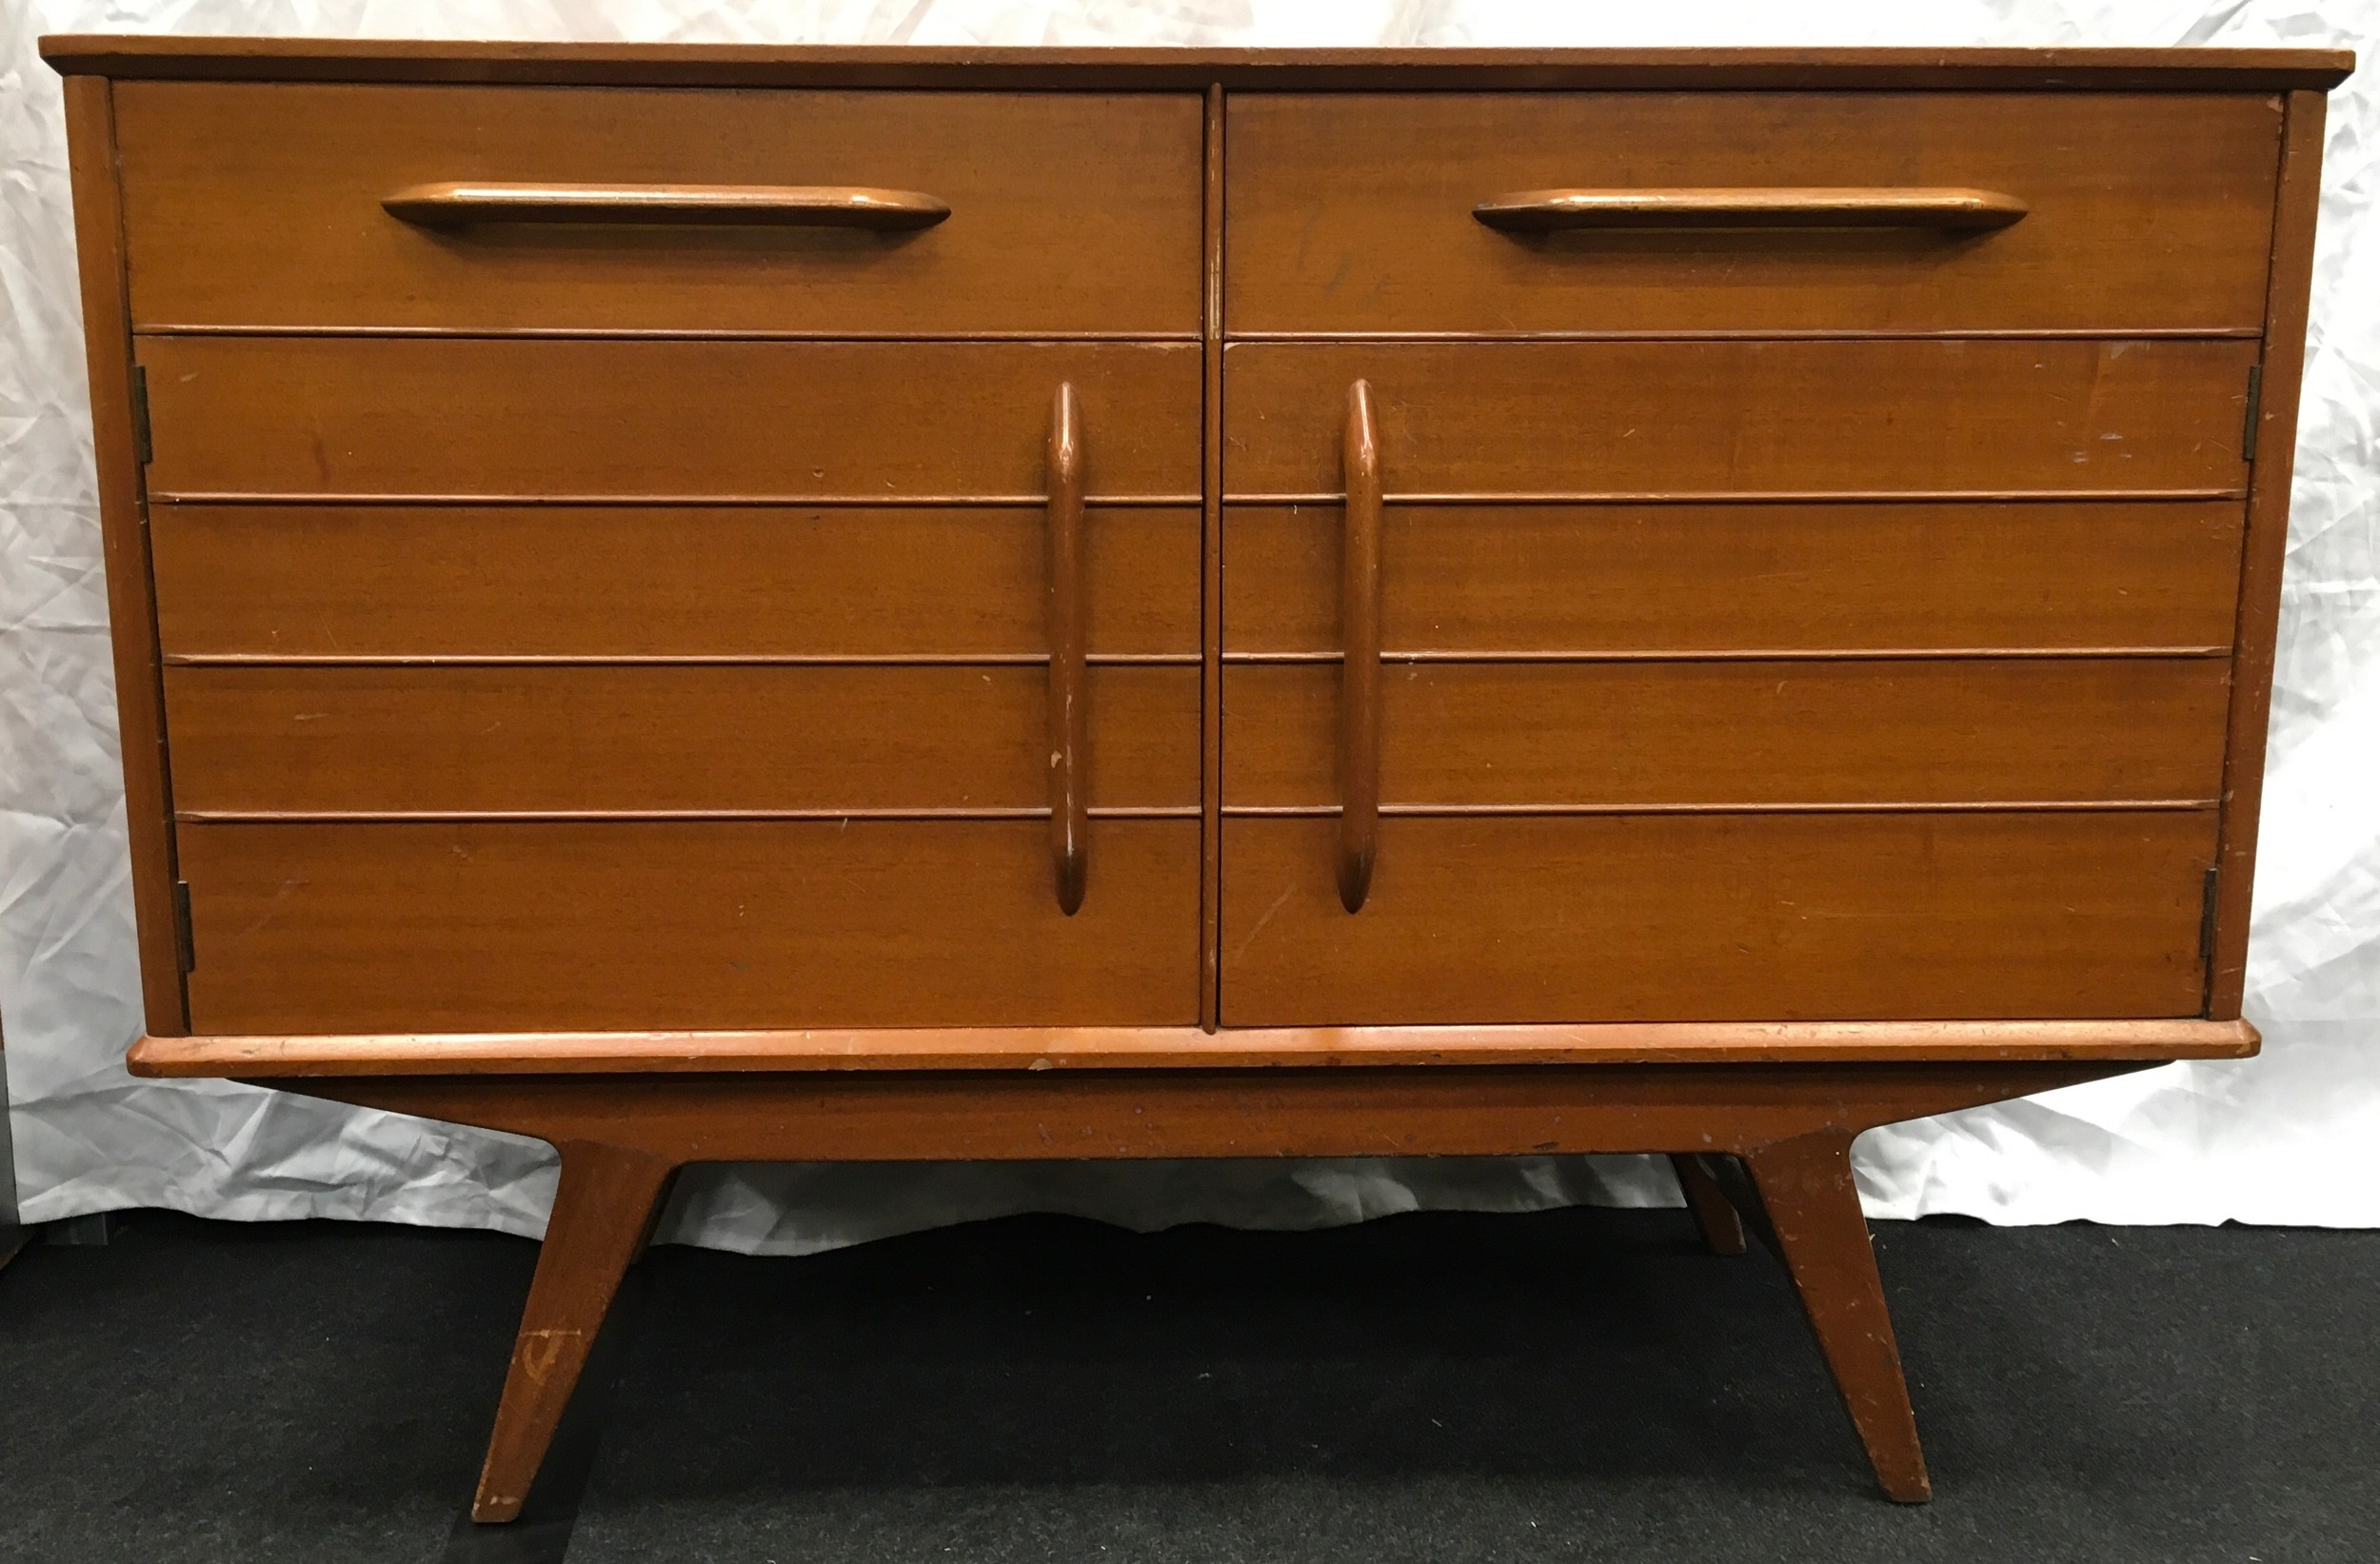 Teak mid 20th century two drawer two door sideboard by E Gomme Wycombe with makers mark 124x47x90cm.